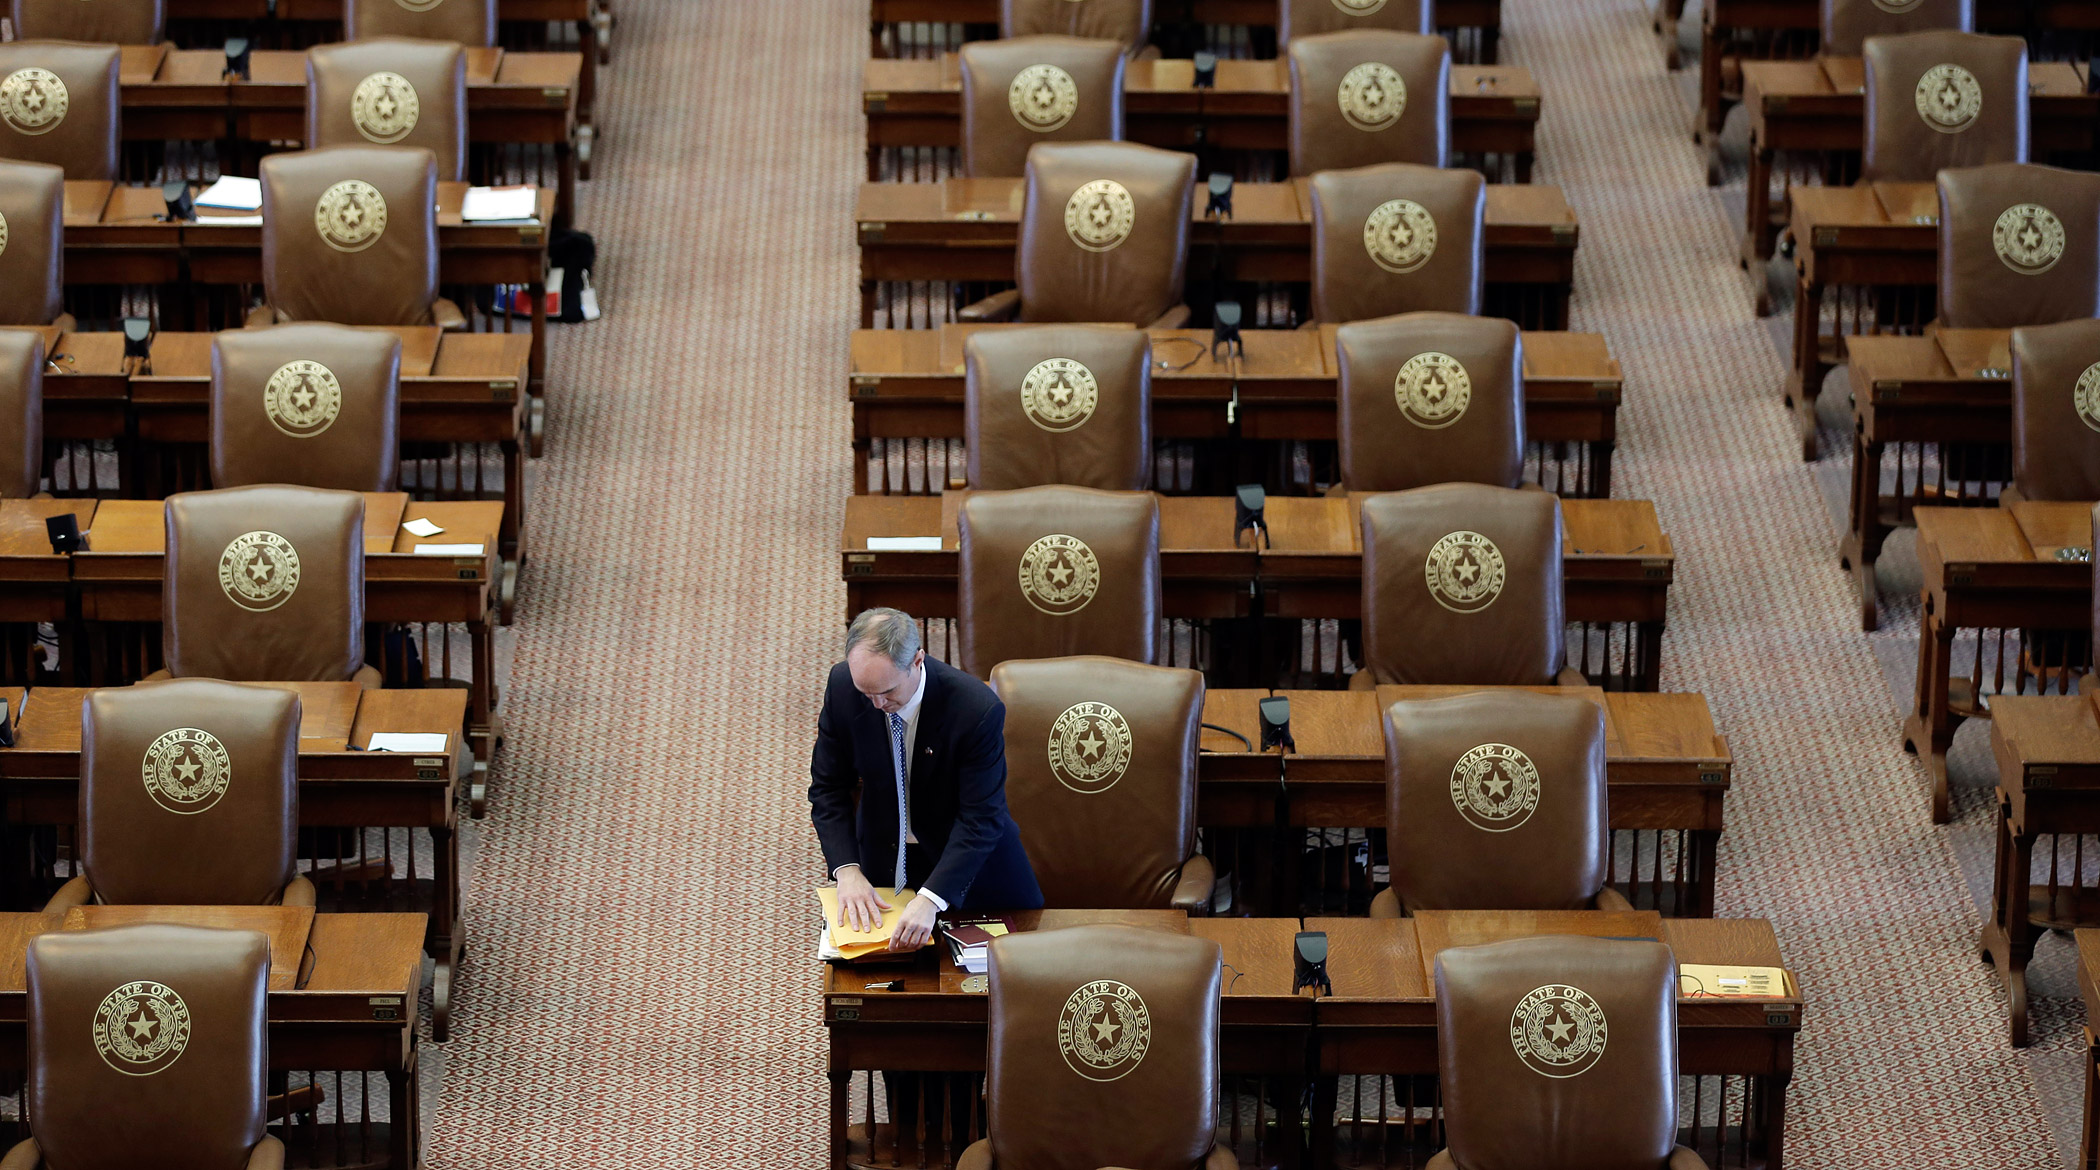 Rep. Mike Schoefield packs up his desk after the House adjourned on the final day of the legislative session in the House Chamber at the Texas Capitol on June 1, 2015, in Austin, TX.